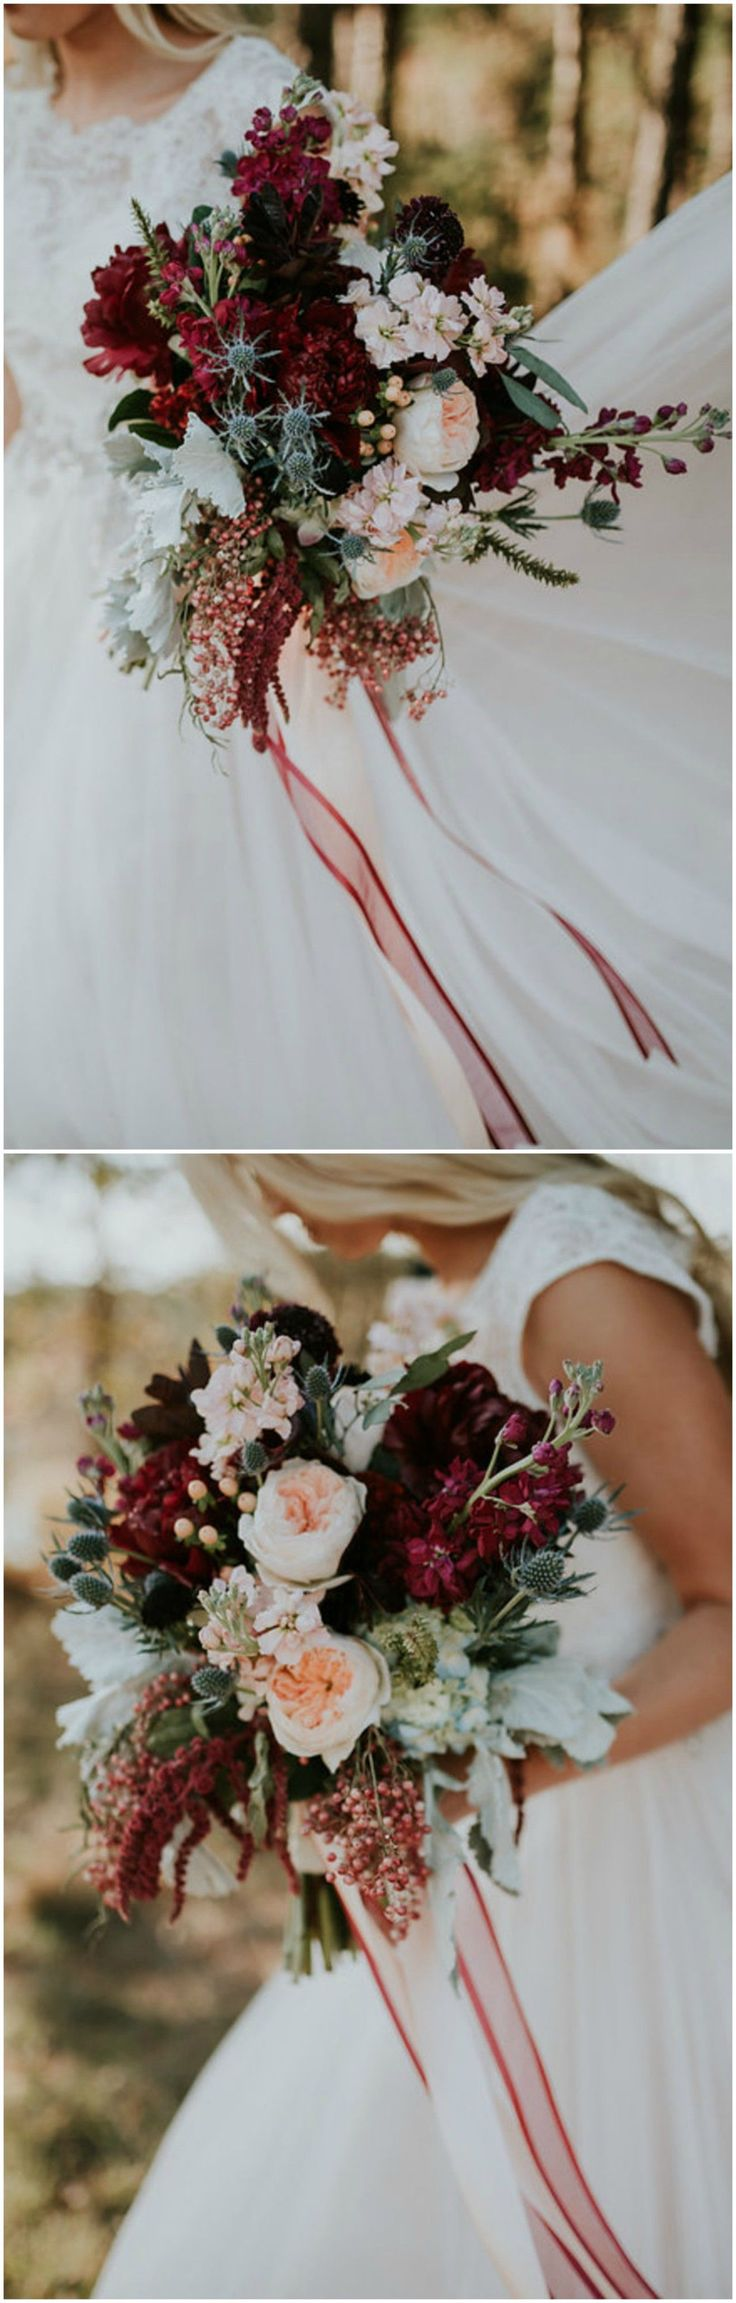 best accessories images on pinterest wedding ideas bridal